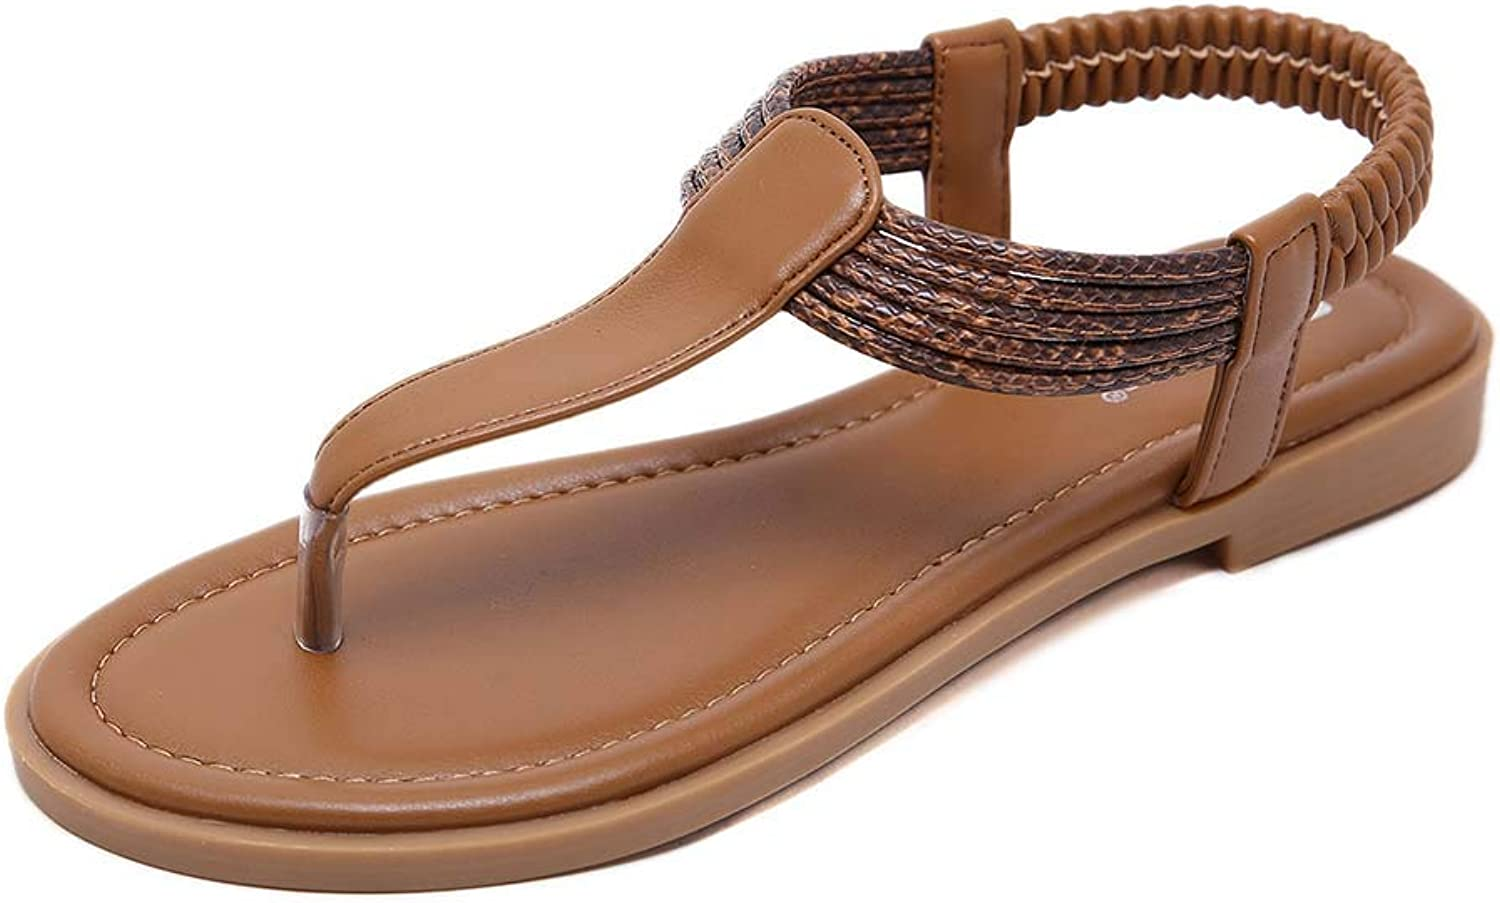 Women's Braided Strap Thong Flat Bohemian Slip On Flip Flops shoes T-Strap Casual Sandals,Brown,40